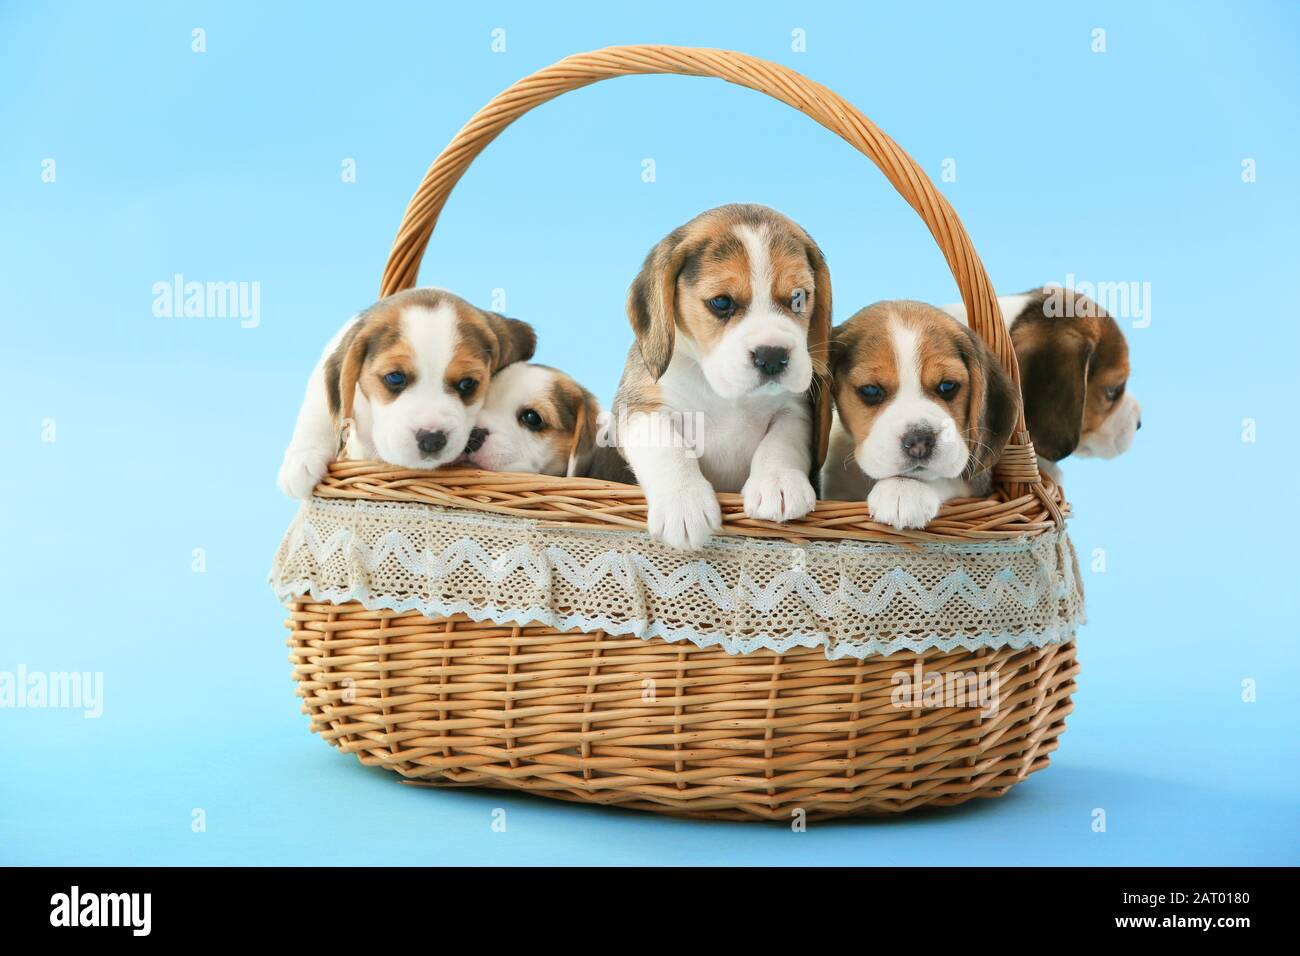 Cute Beagle Puppies In Basket On Color Background Stock Photo Alamy